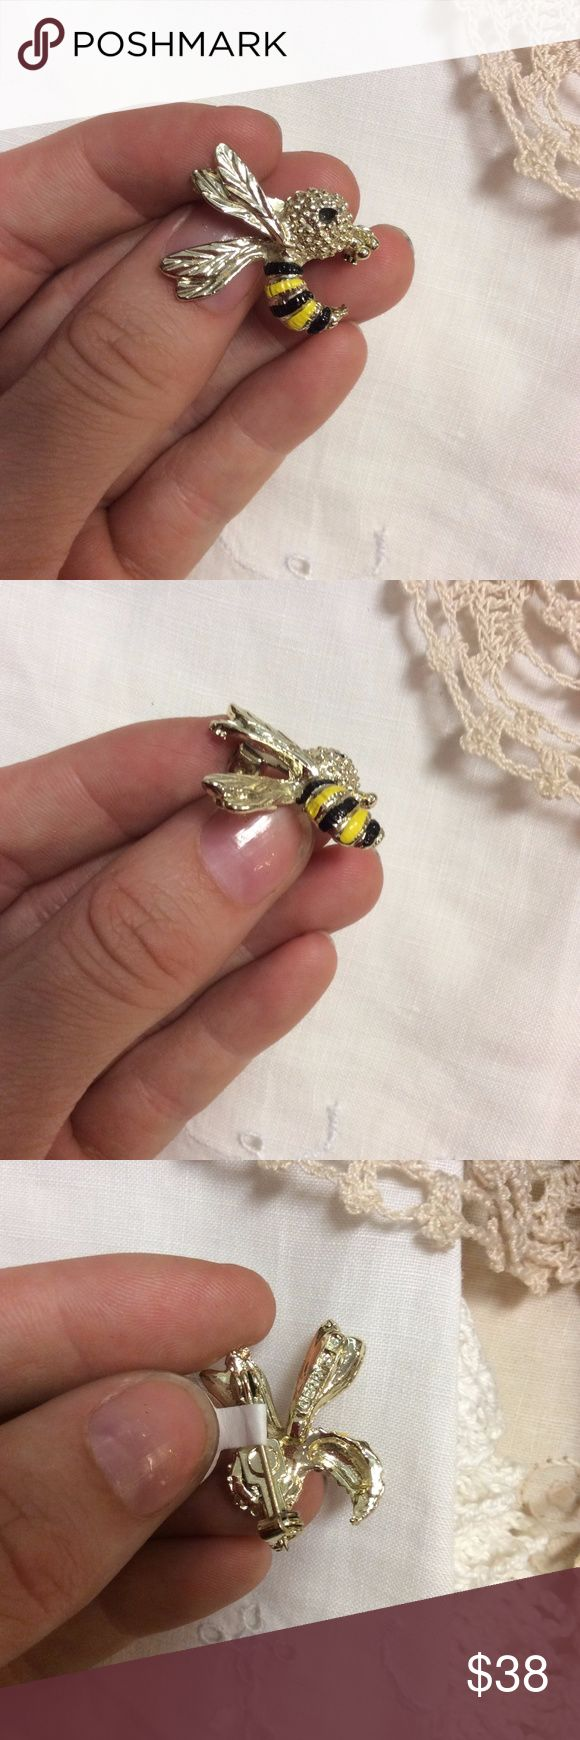 Vintage Yellow Jacket, Wasp Pin Excellent condition brooch. black and yellow. like an inch tall. Insect lovers. bug. bugs. wings. flight. mascot. Bee. honeybee. bees. sting. stinger. J000411088874581 Vintage Jewelry Brooches